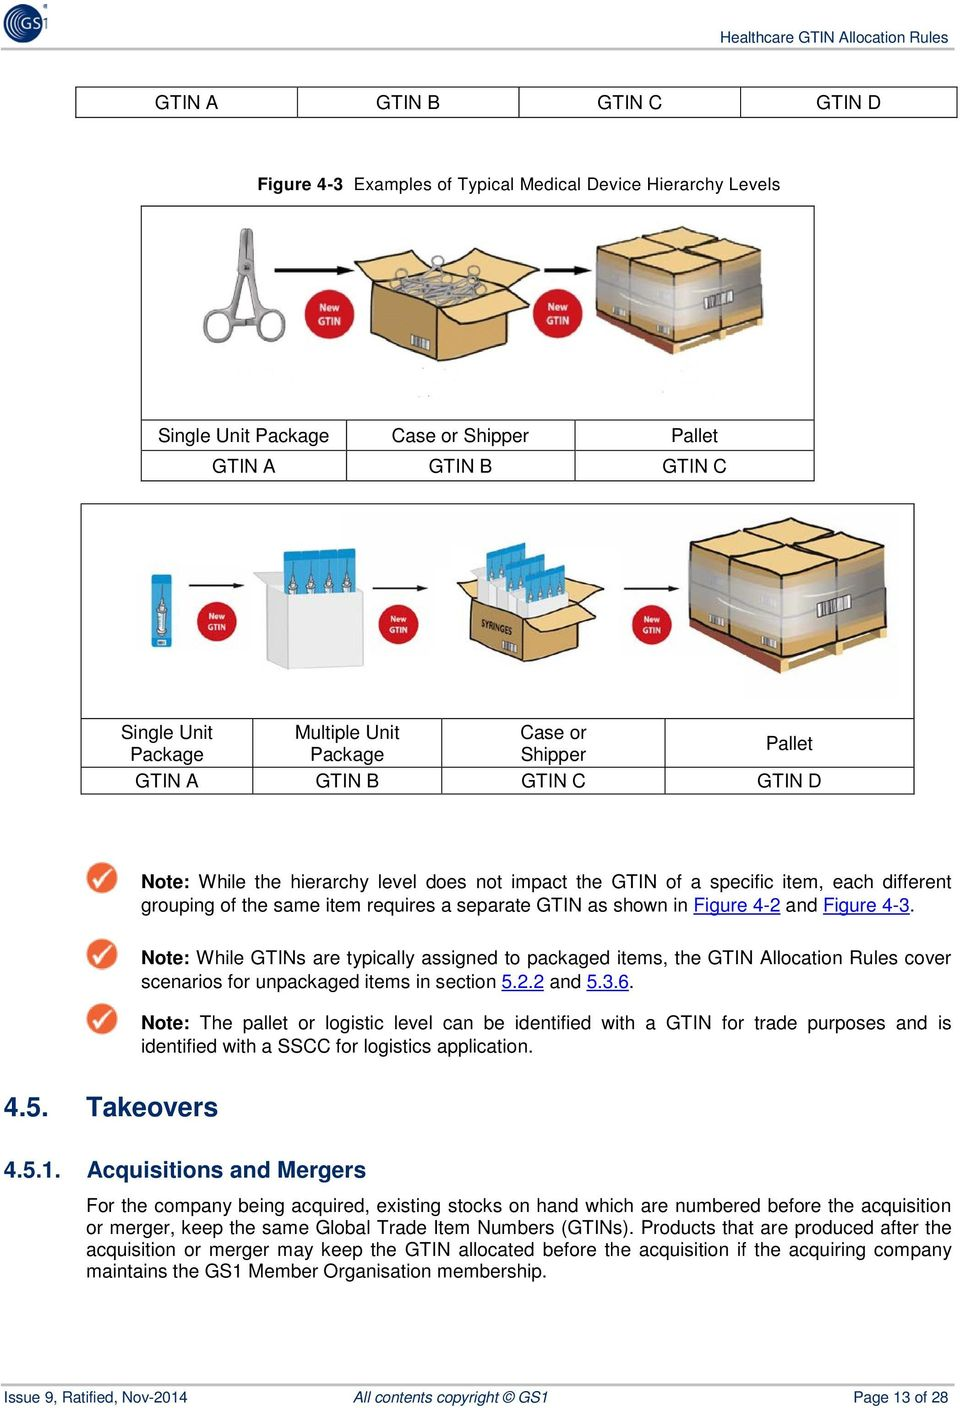 shown in Figure 4-2 and Figure 4-3. Note: While GTINs are typically assigned to packaged items, the GTIN Allocation Rules cover scenarios for unpackaged items in section 5.2.2 and 5.3.6.